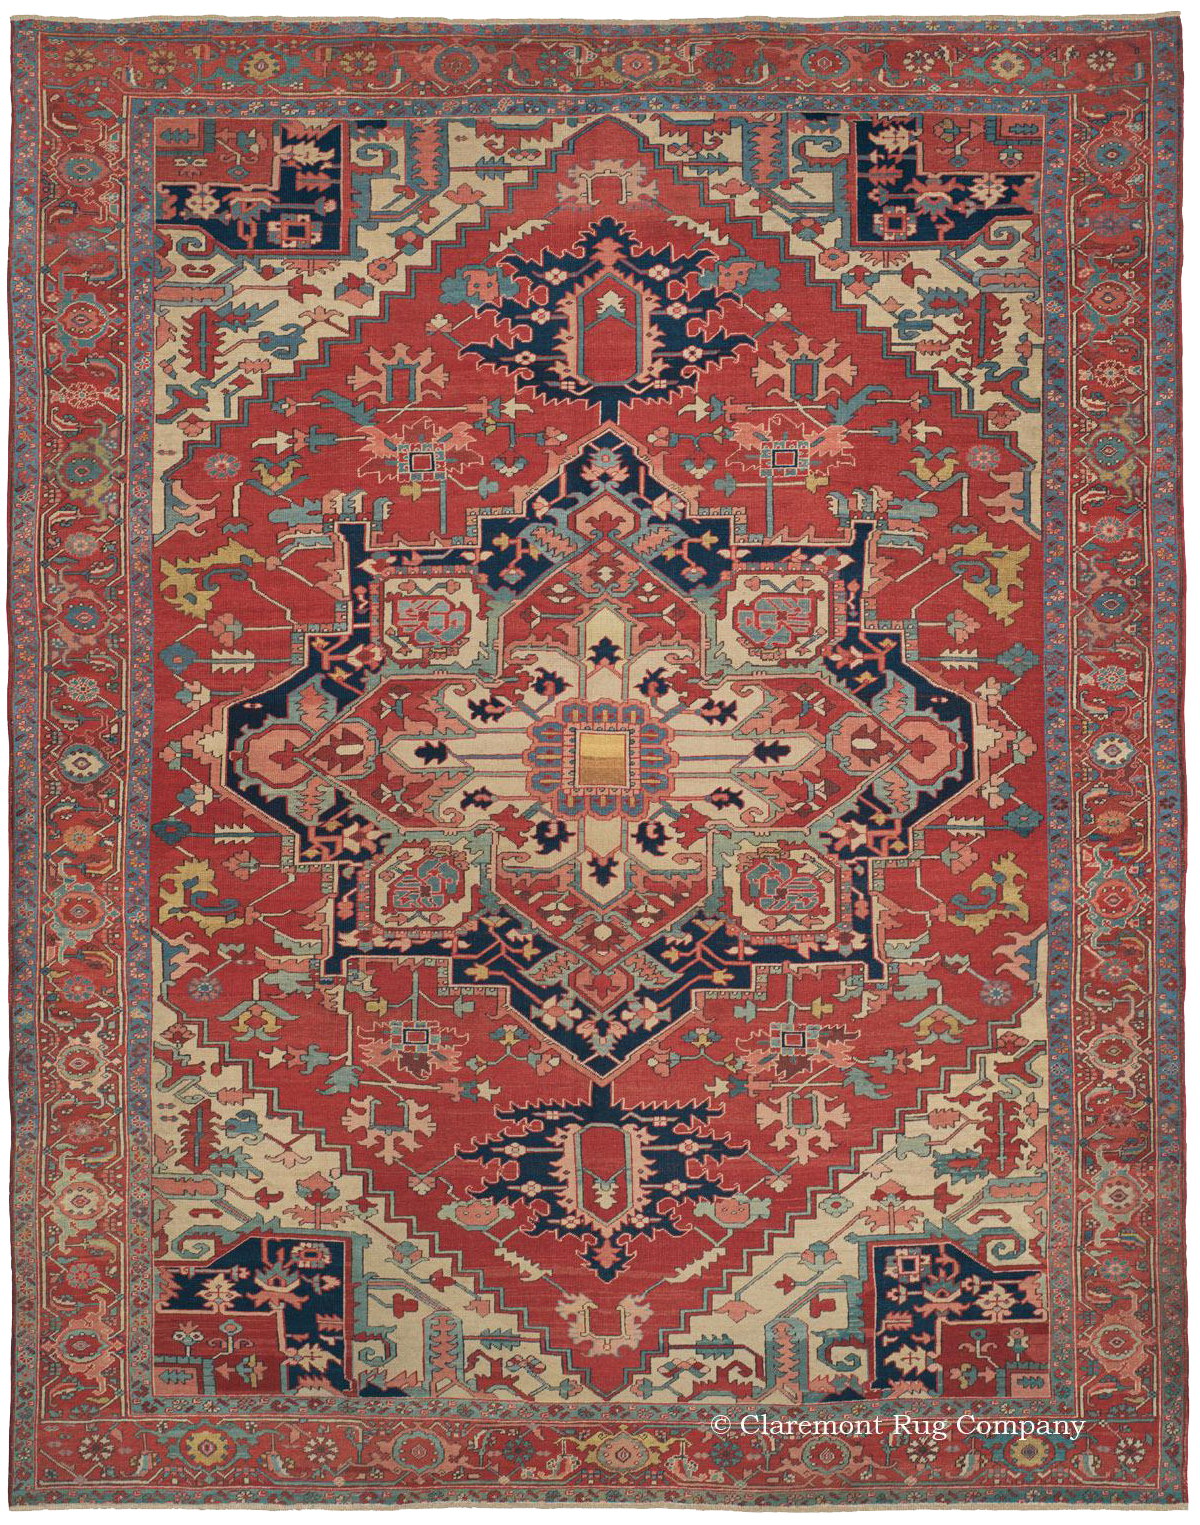 Learn More About Northwest Persian 19th Century Serapi Rug Antique Rugs In The Village Tradition Claremont Company